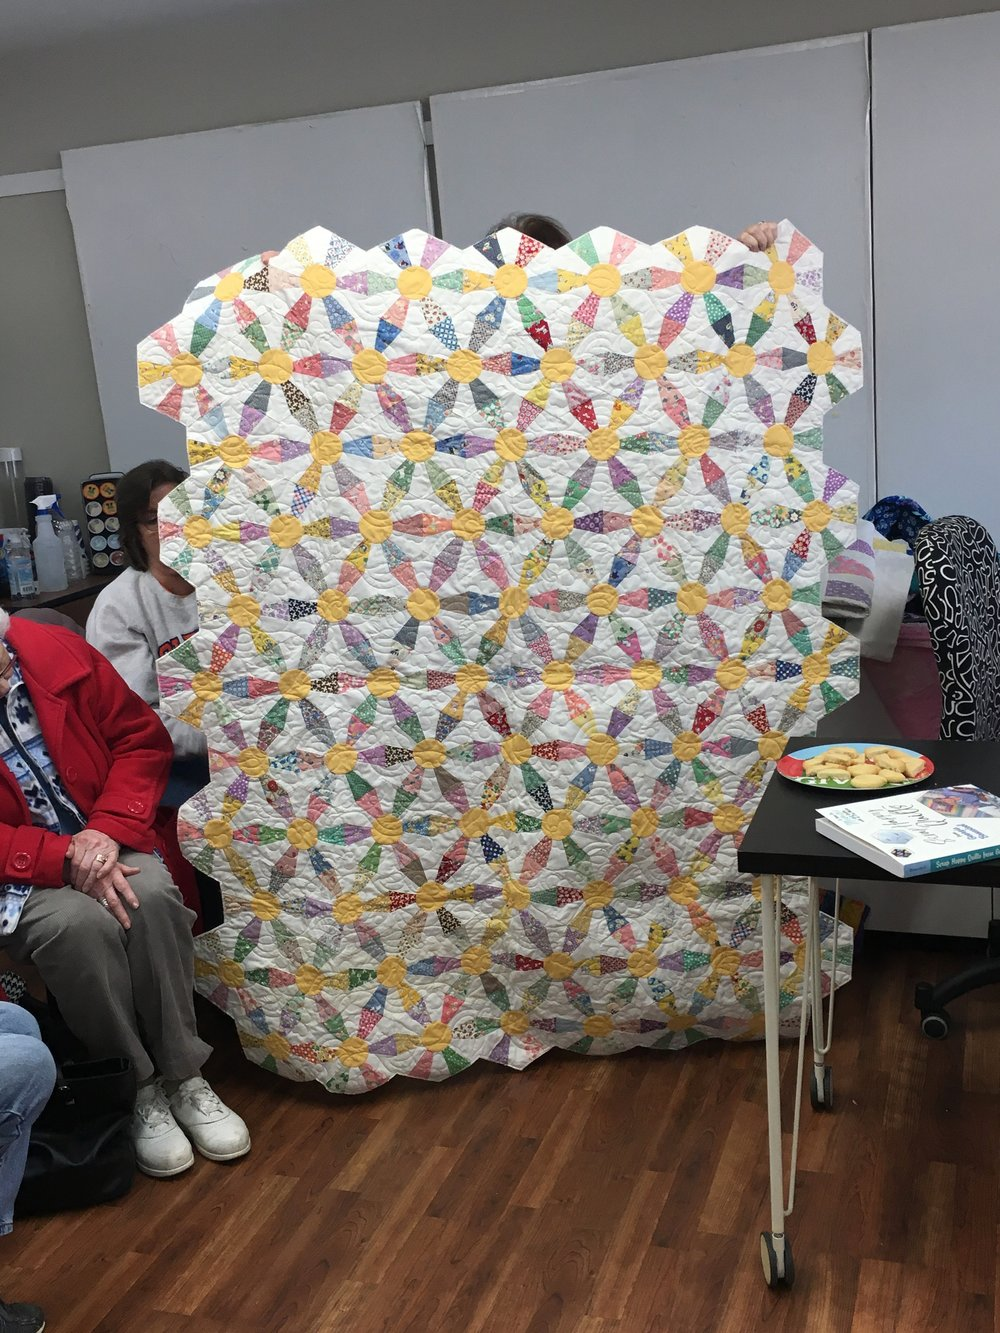 The grand finale from Connie, again. Known as the Pizza quilt but done here in more feed sacks. Note the half cookies on the table brought from Connie as my Half Birthday to share with all. So fun and meaningful to sign lots of my new Scrap Happy Quilts book for fellow quilters. Stay tuned for next month.